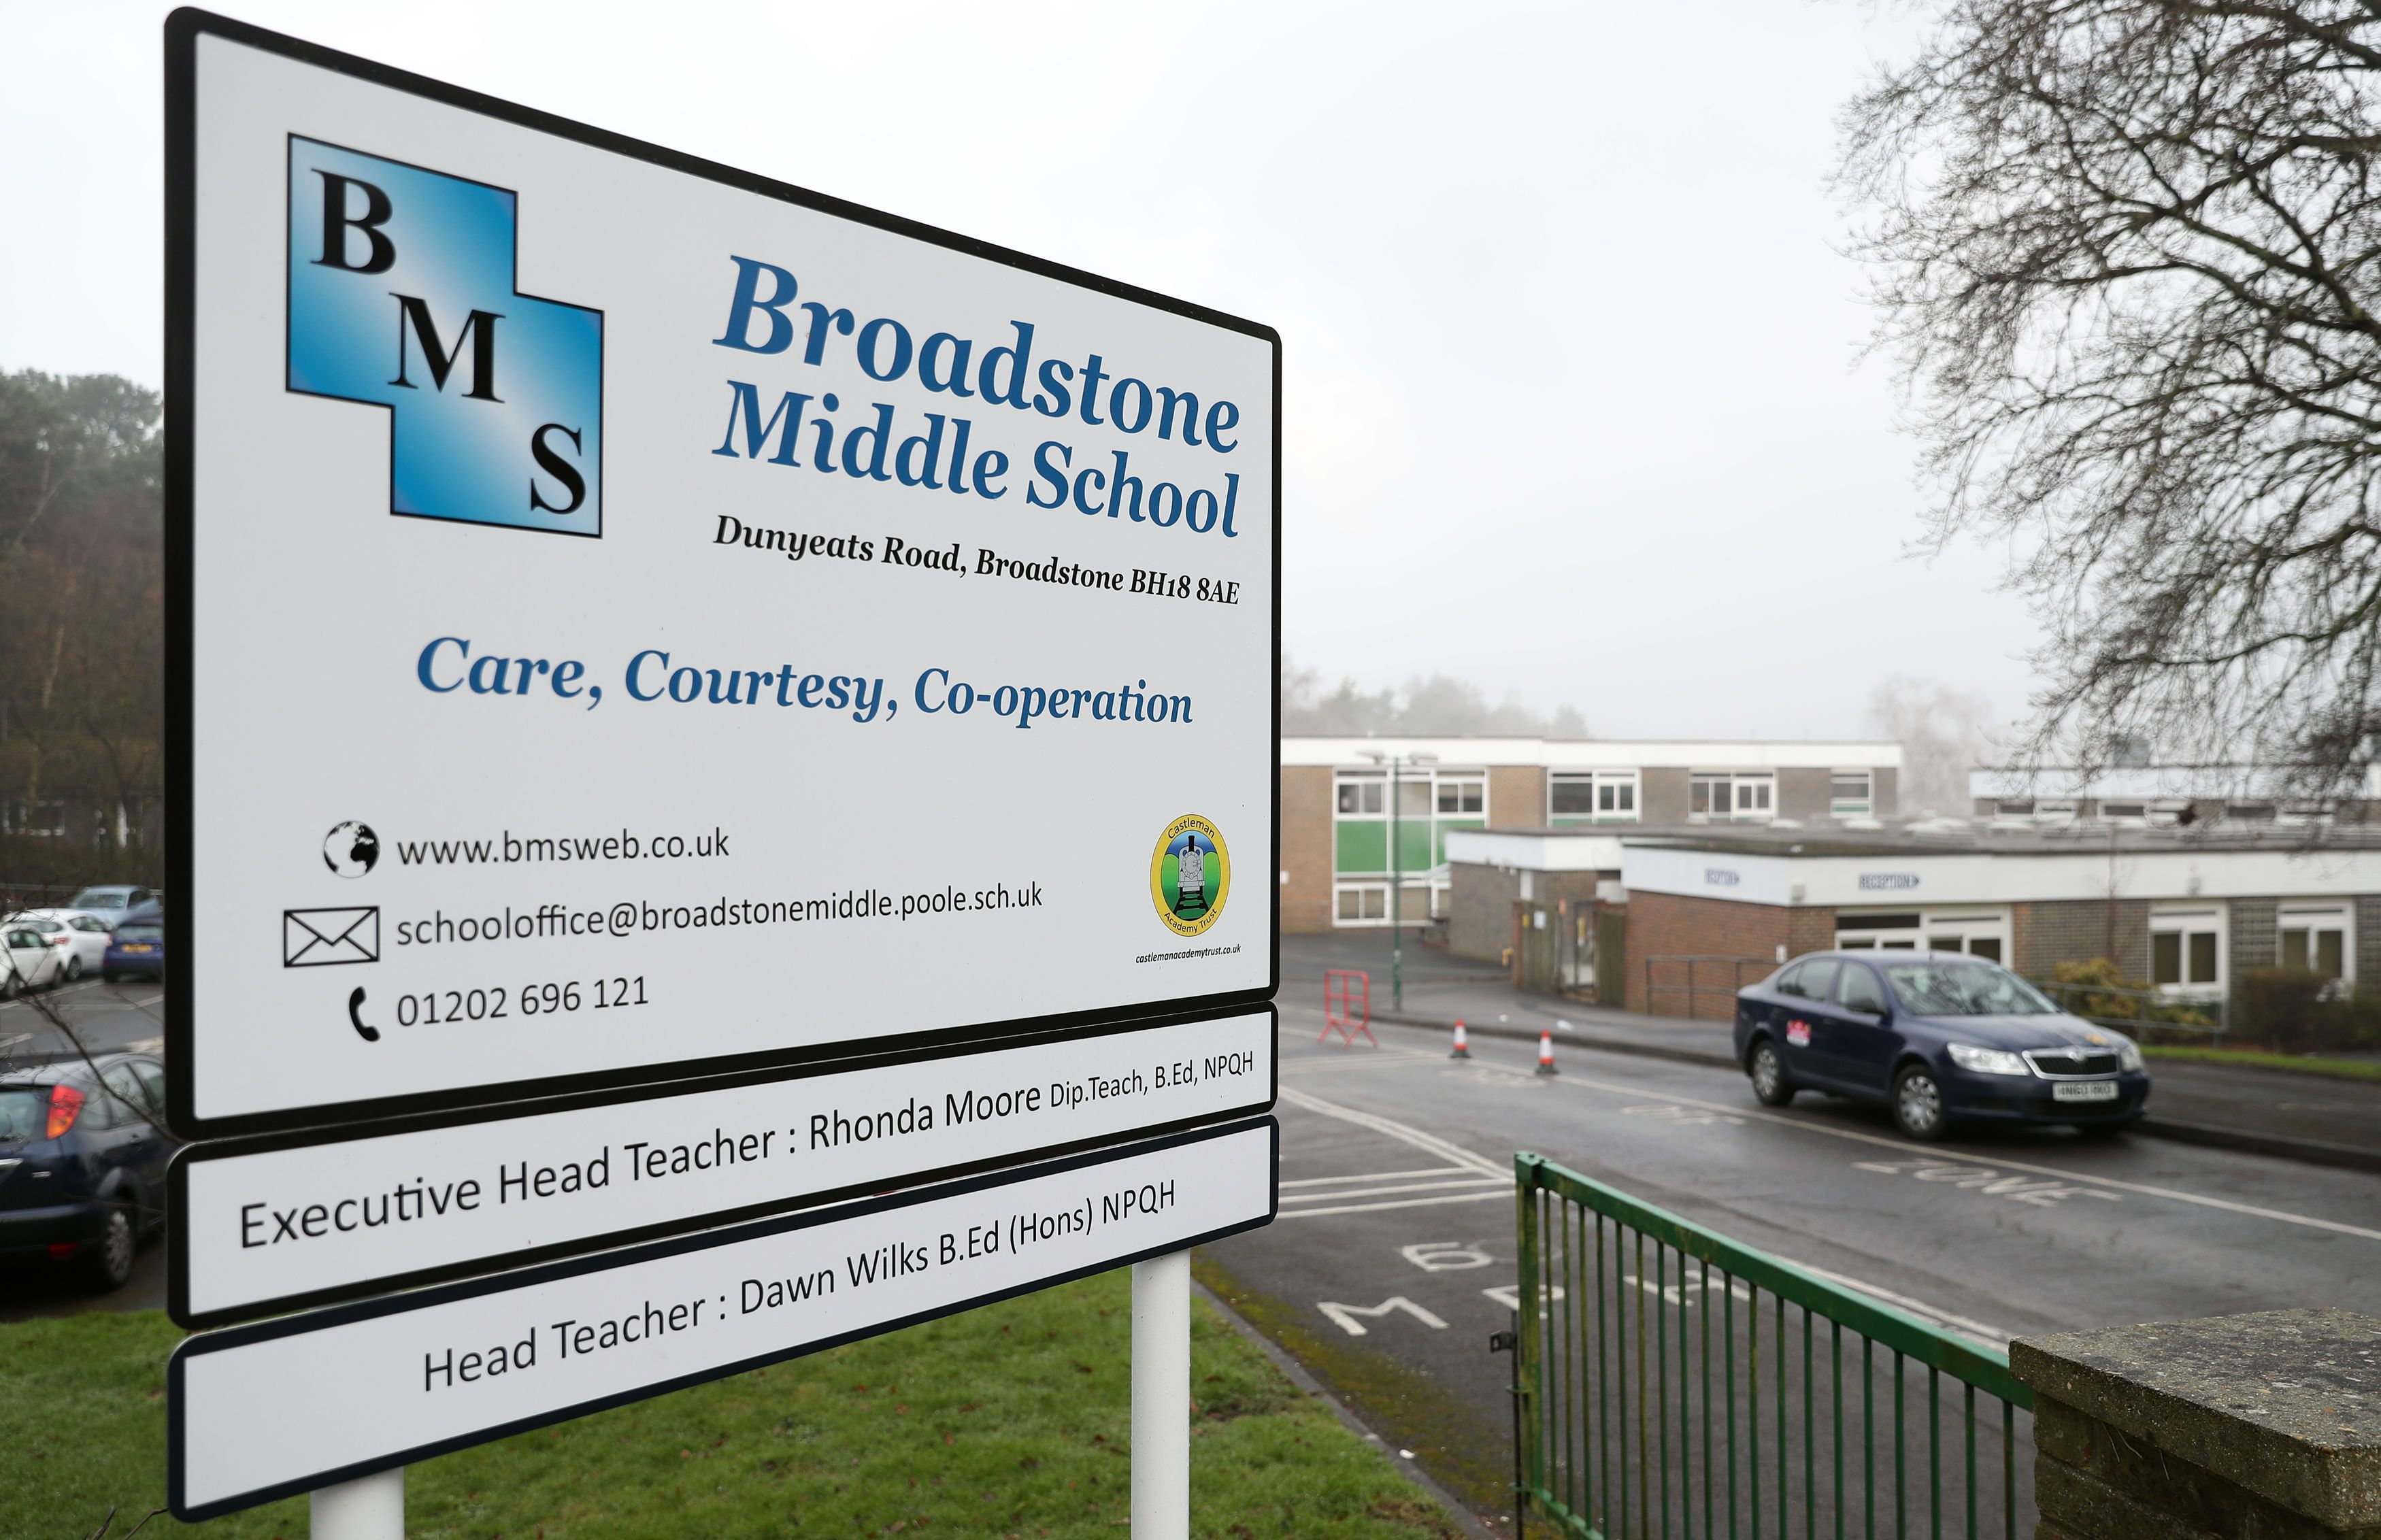 Broadstone Middle School in Dorset, where police were called over fears that some children had taken...